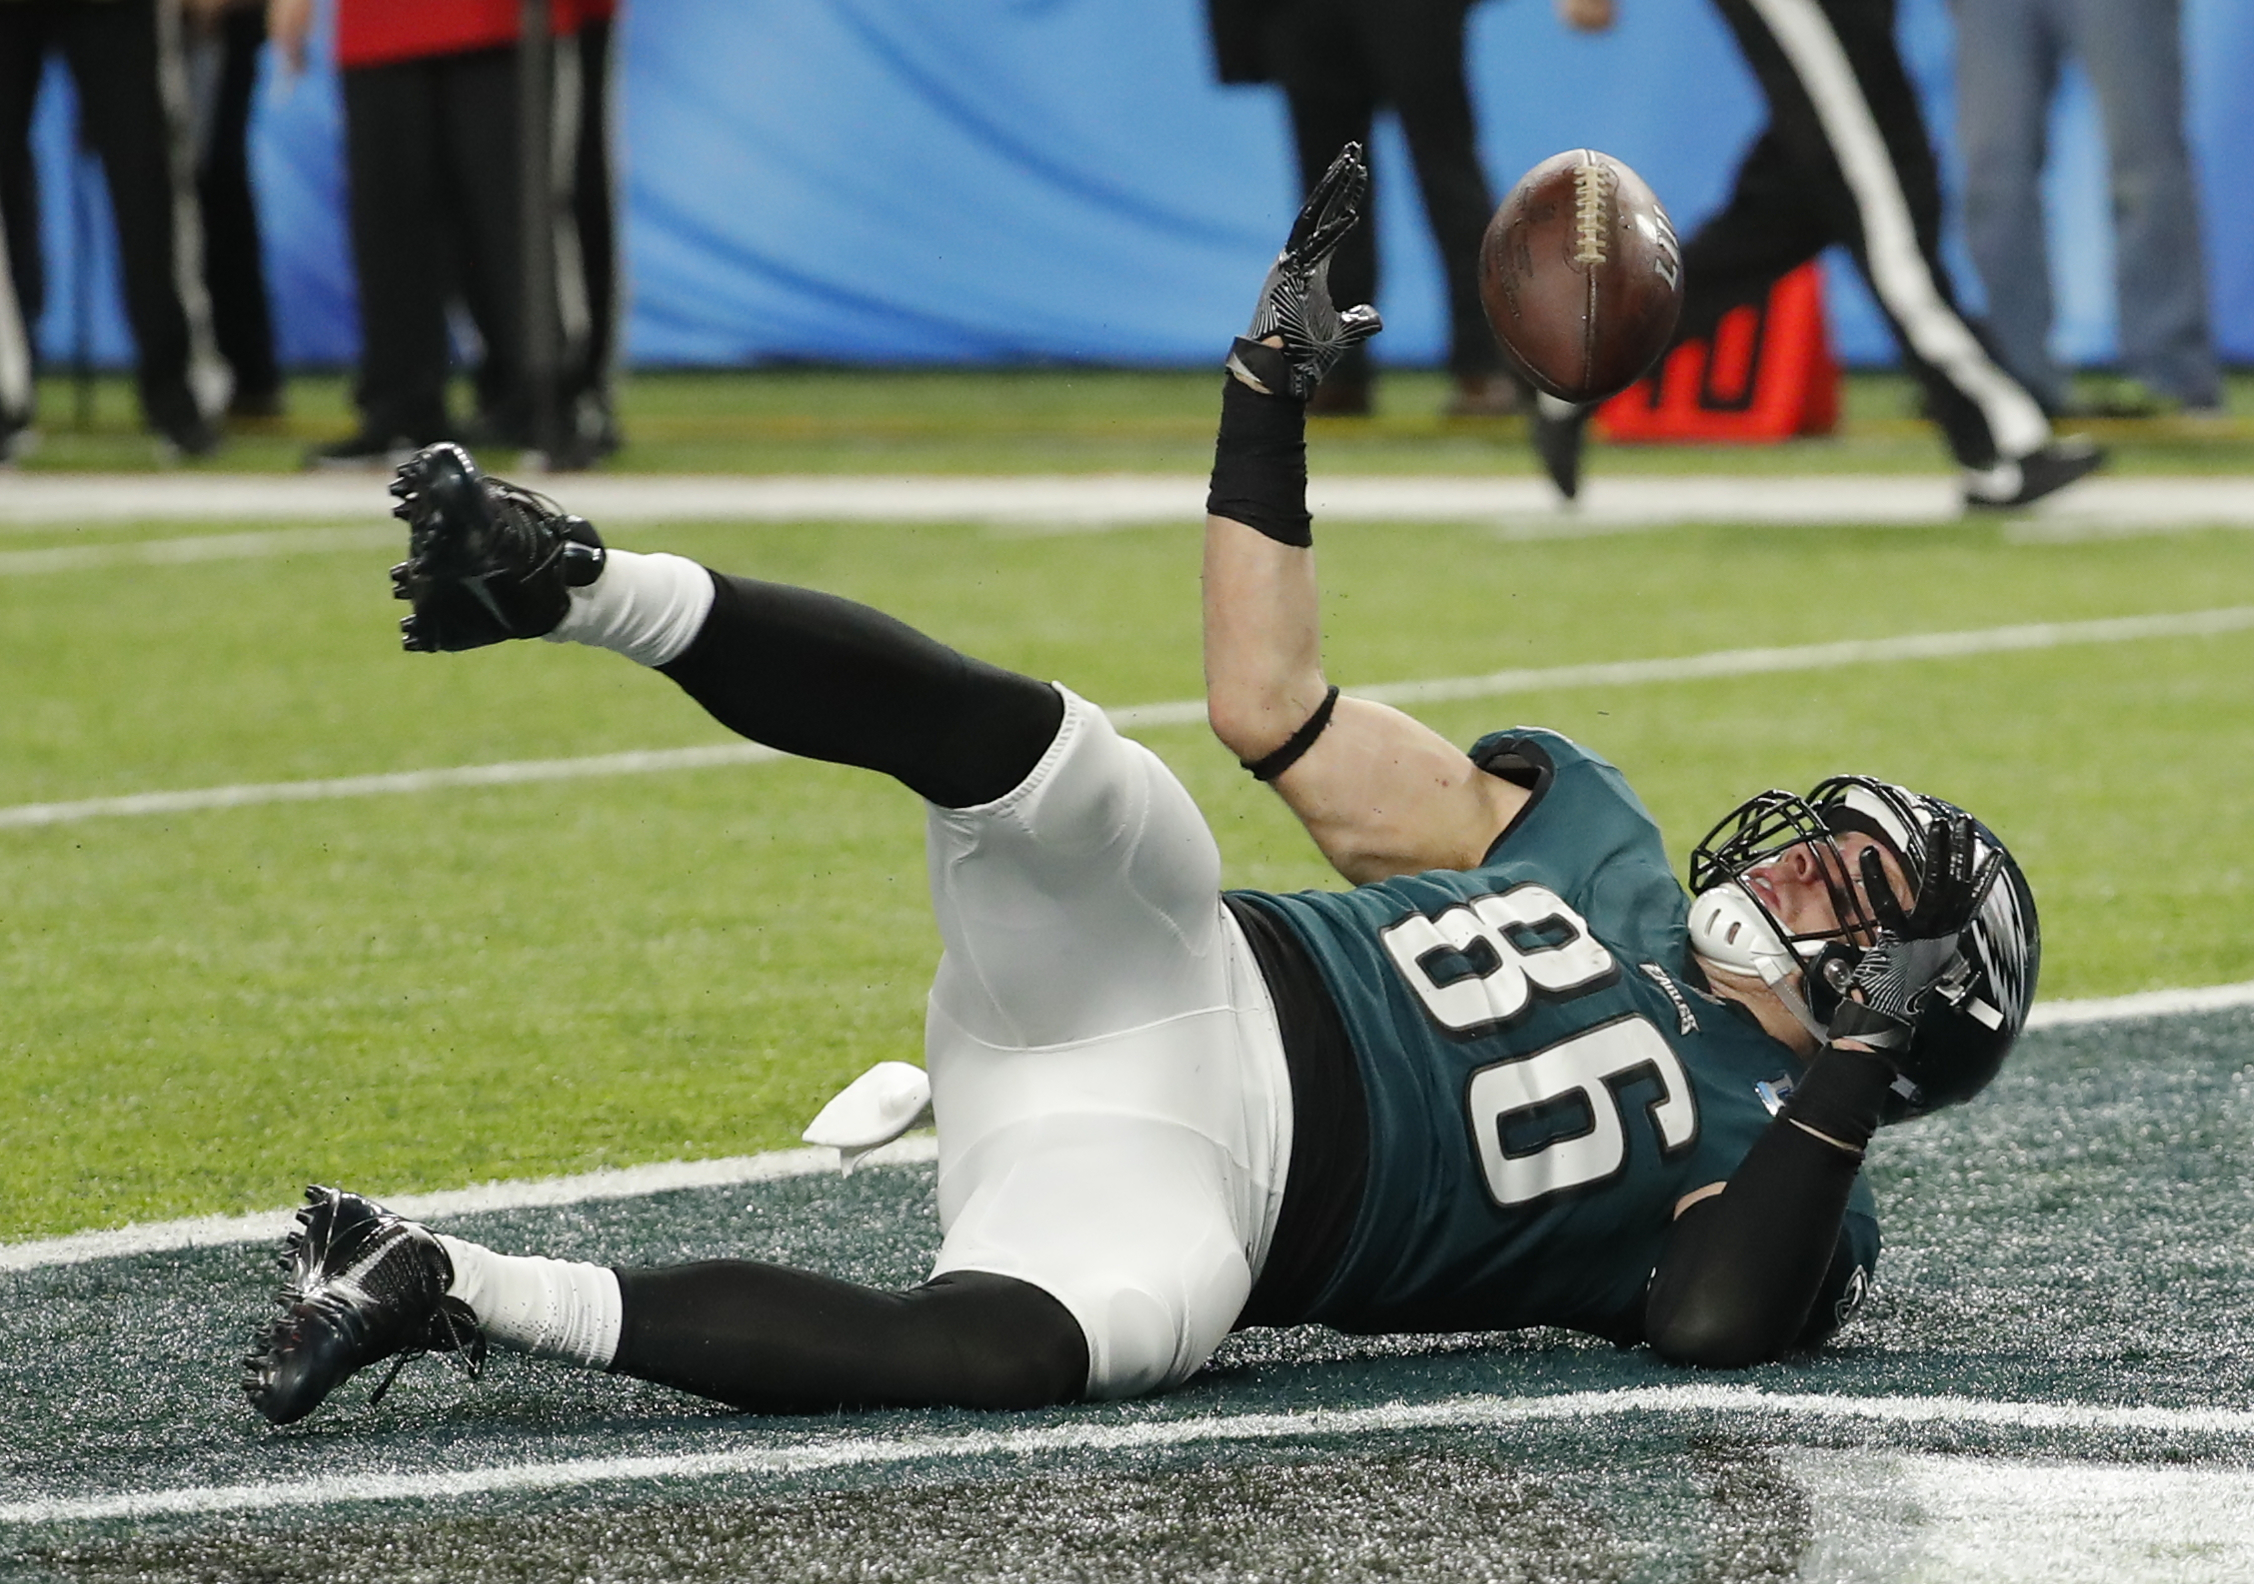 "<div class=""meta image-caption""><div class=""origin-logo origin-image ap""><span>AP</span></div><span class=""caption-text"">Philadelphia Eagles tight end Zach Ertz (86) bobbles the ball as he dives into the end zone for a touchdown, during the second half of NFL Super Bowl 52. (AP Photo/Charlie Neibergall)</span></div>"